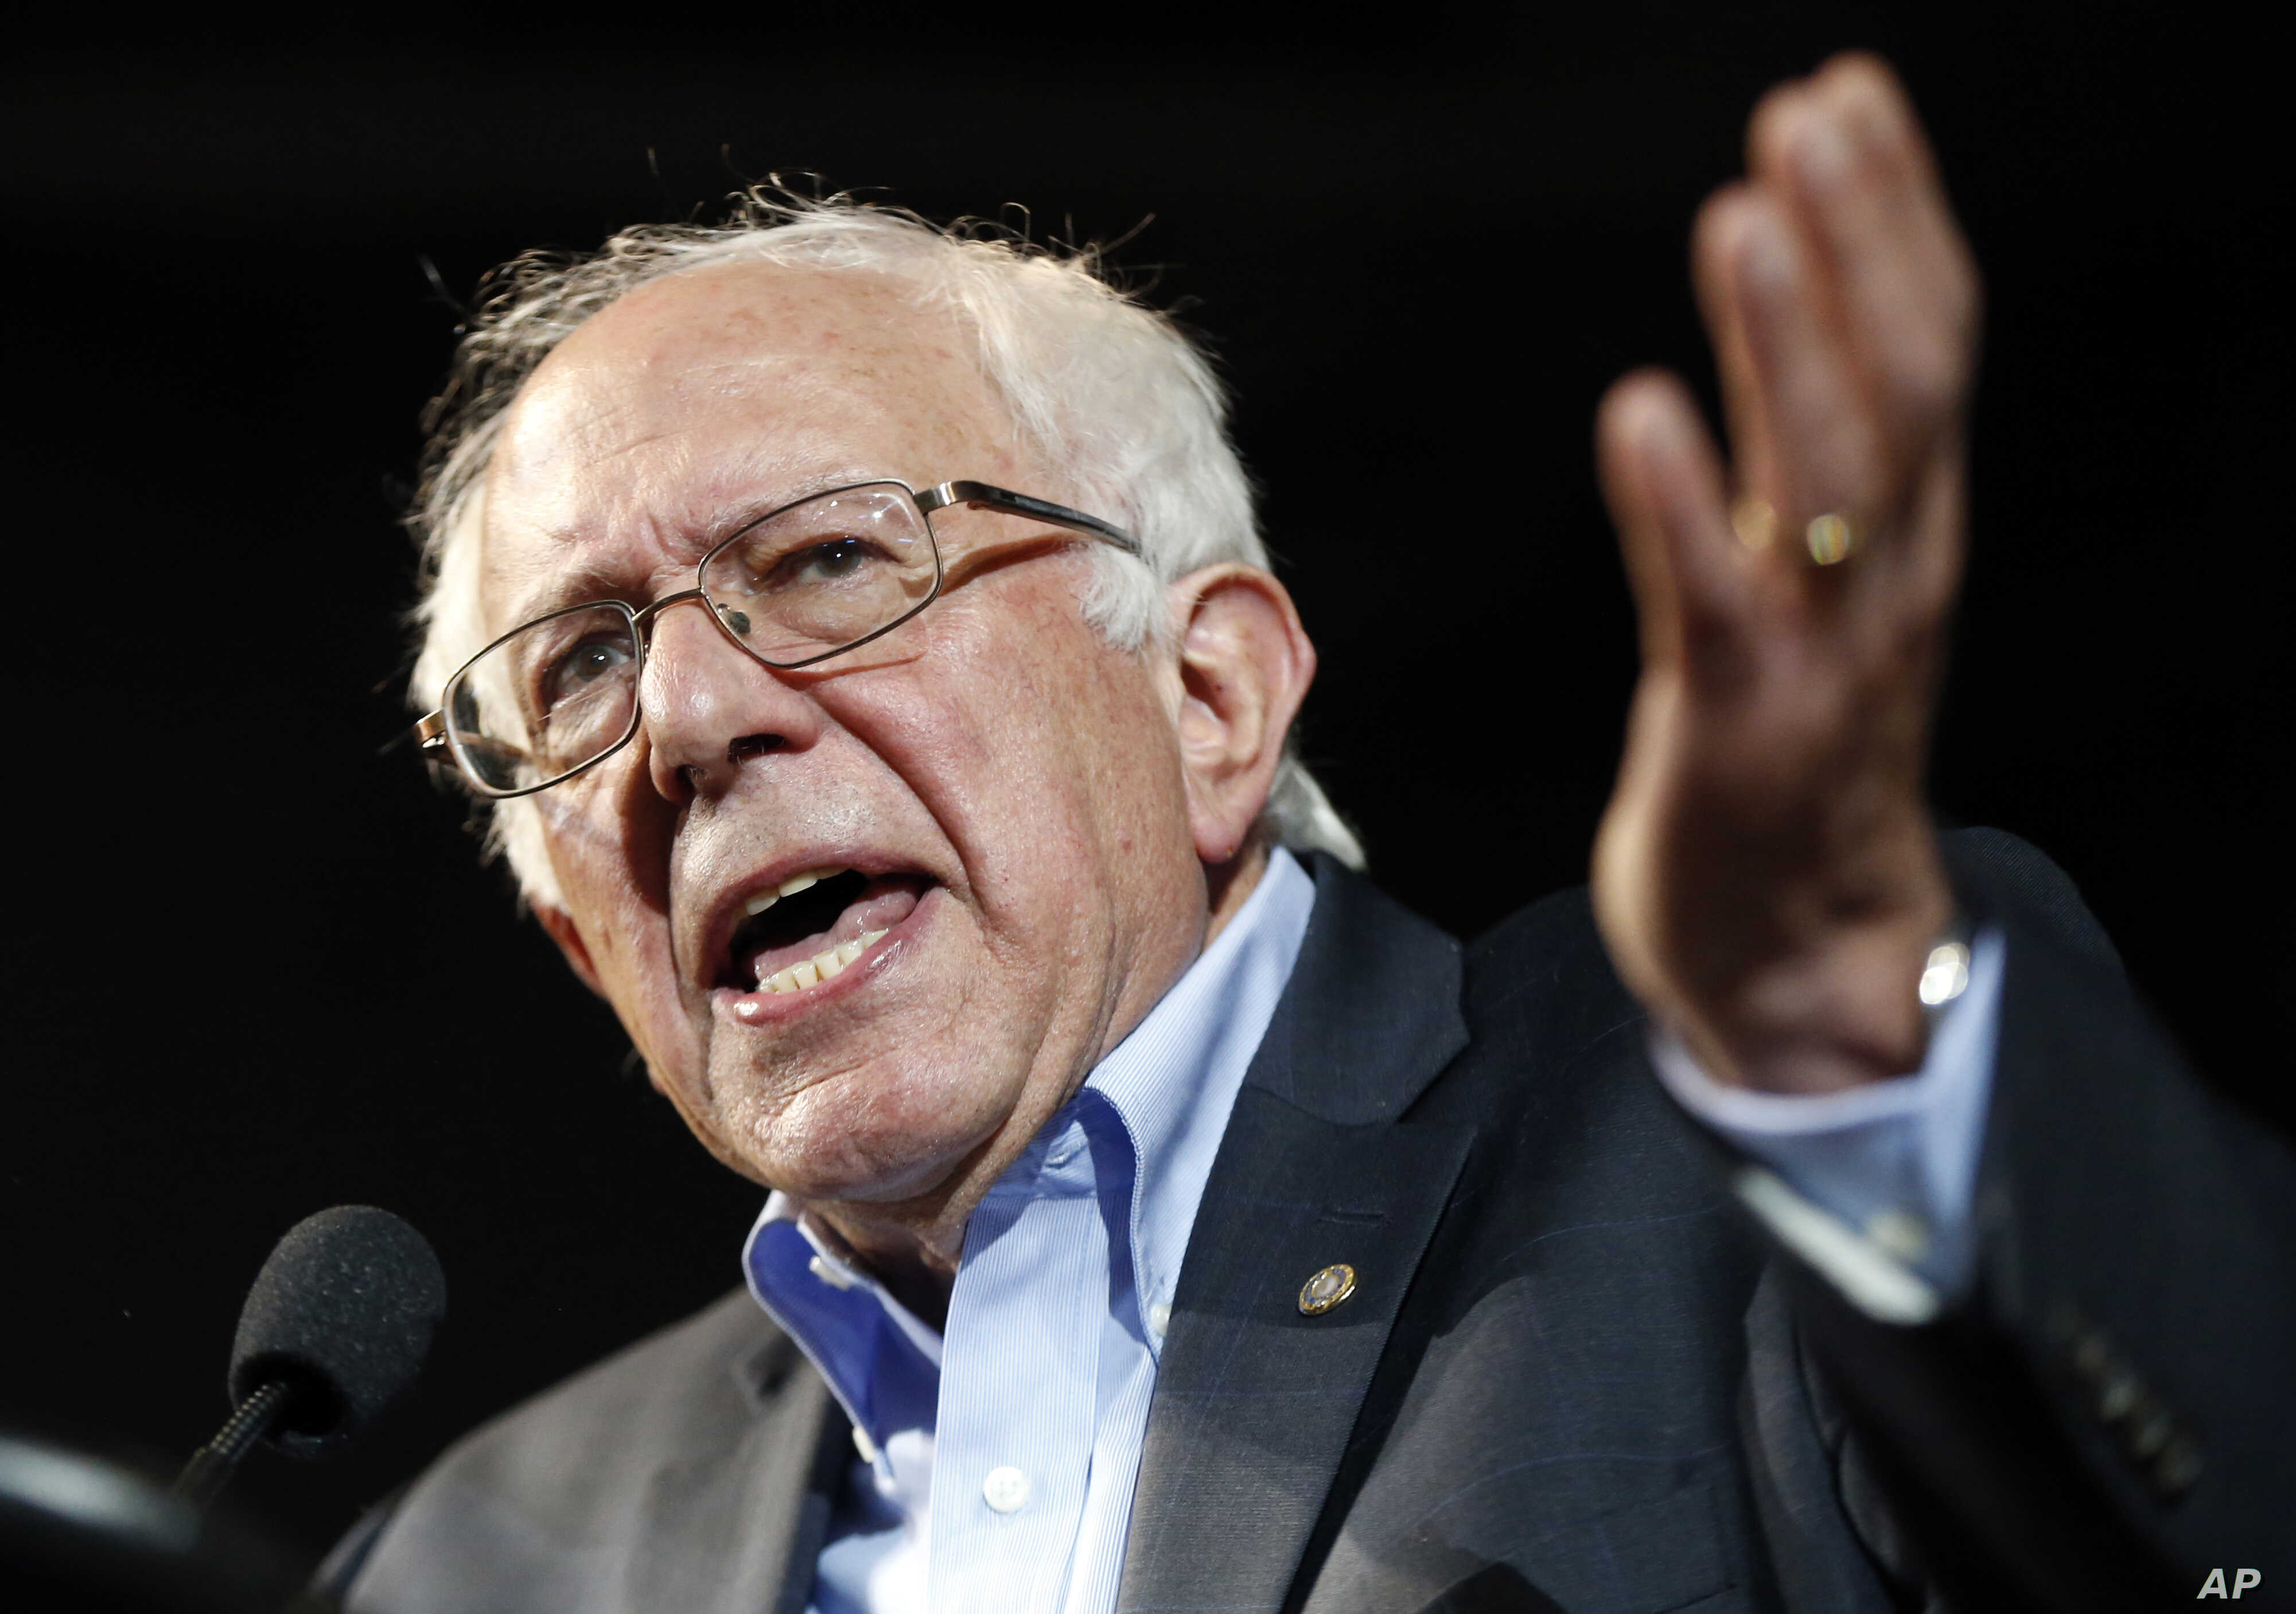 Democratic presidential candidate Sen. Bernie Sanders, I-Vt., speaks at a campaign rally in Portland, Maine. Sanders is packing 'em in: 10,000 people in Madison, Wisconsin, July 6, 2015.